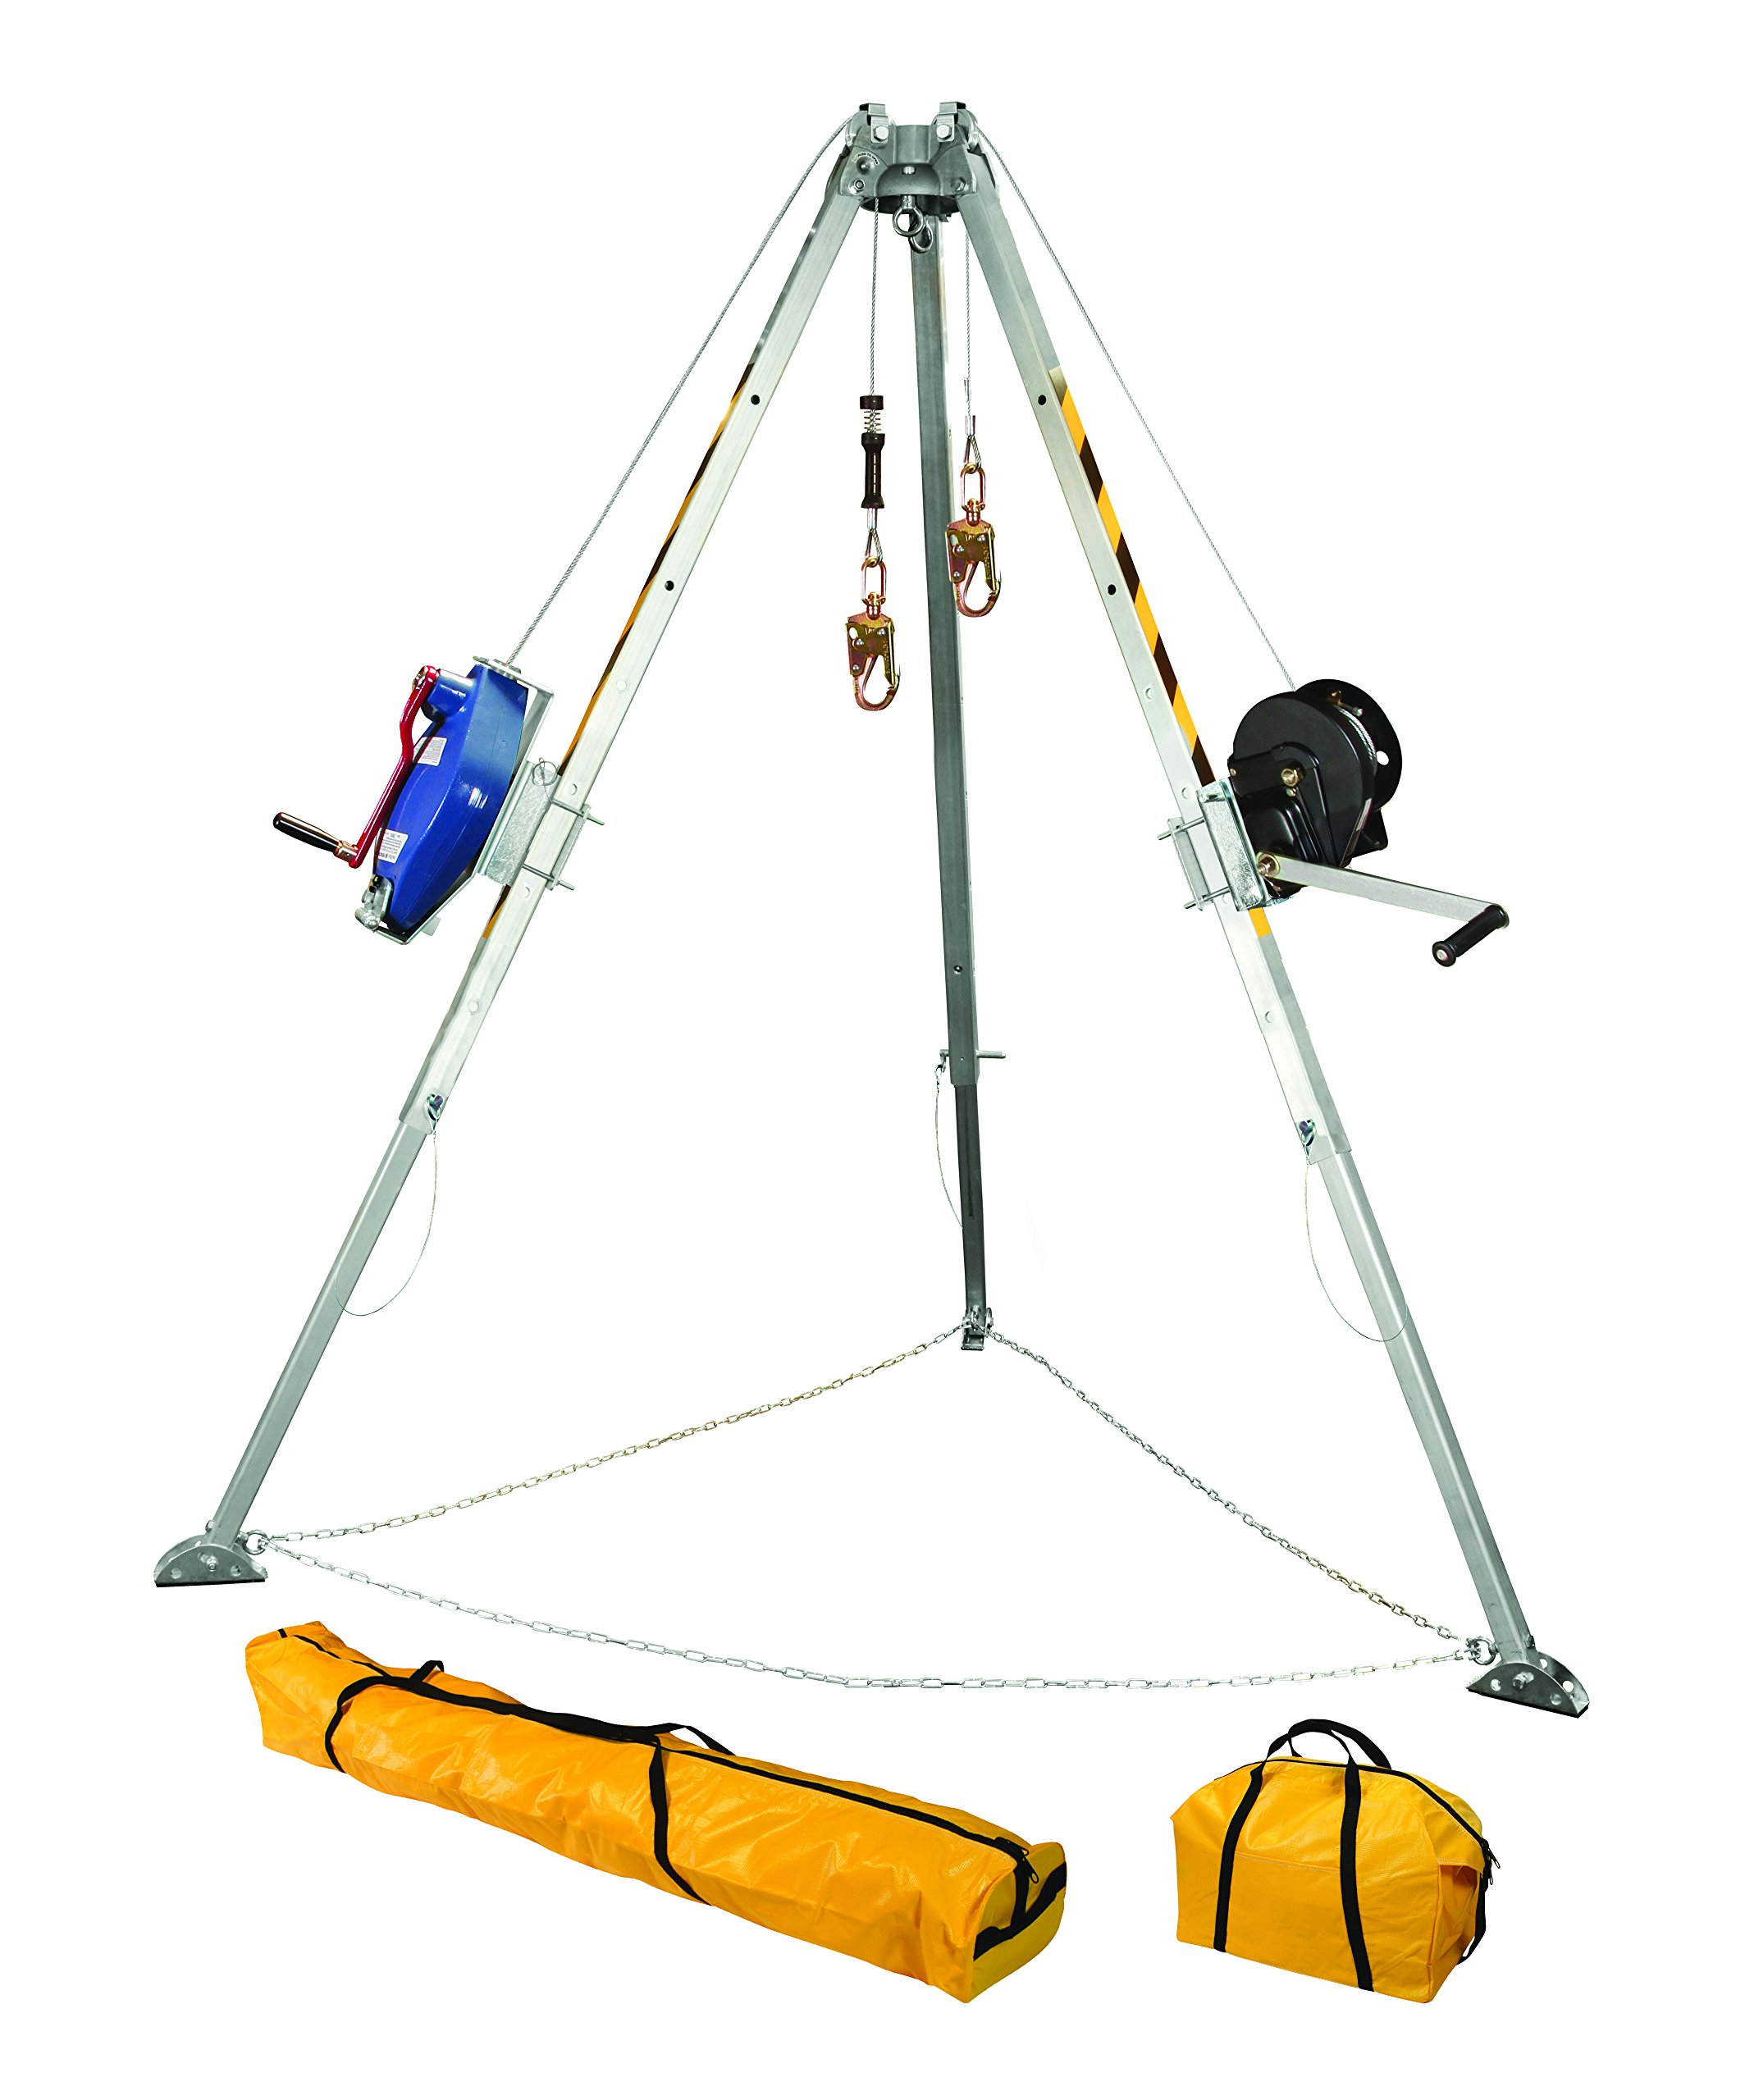 FallTech 7509 Confined Space Tripod Kit   -  Tripod Kit with 7276 Tripod, 7293 Winch, 7281 3-way Retrieval SRL, 2 x 7291B Leg Brackets, and Storage Bags, Natural